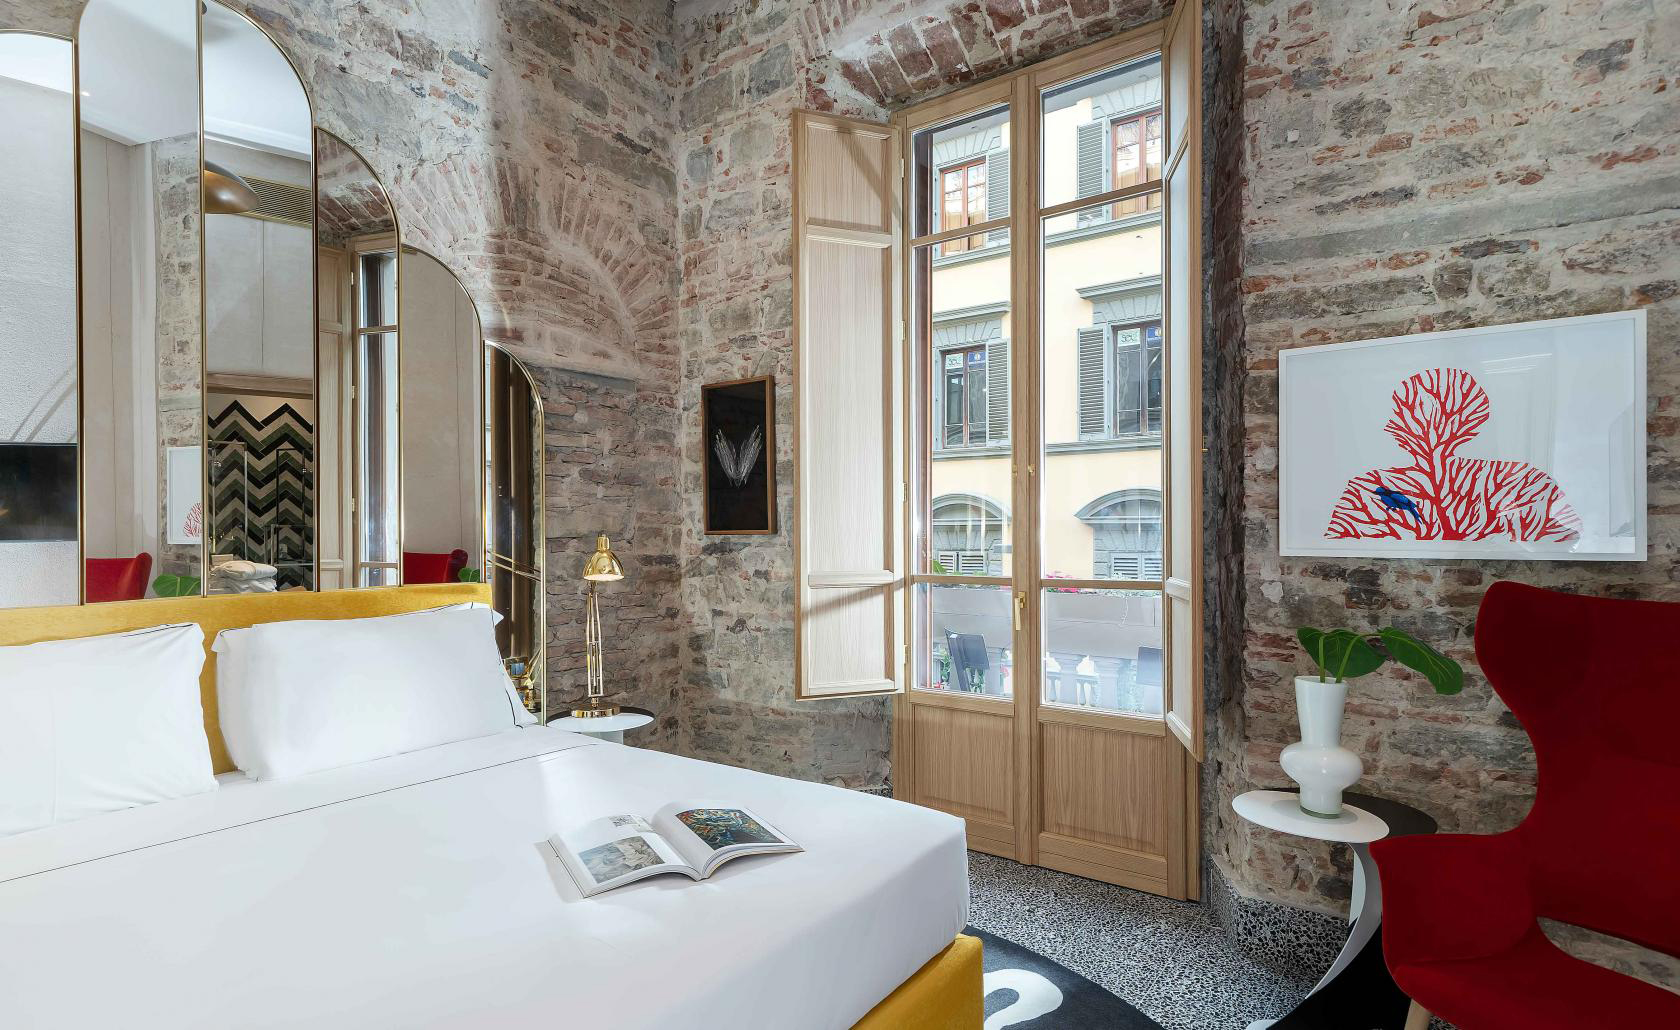 Hotel Calimala in Florence - opening October 2019